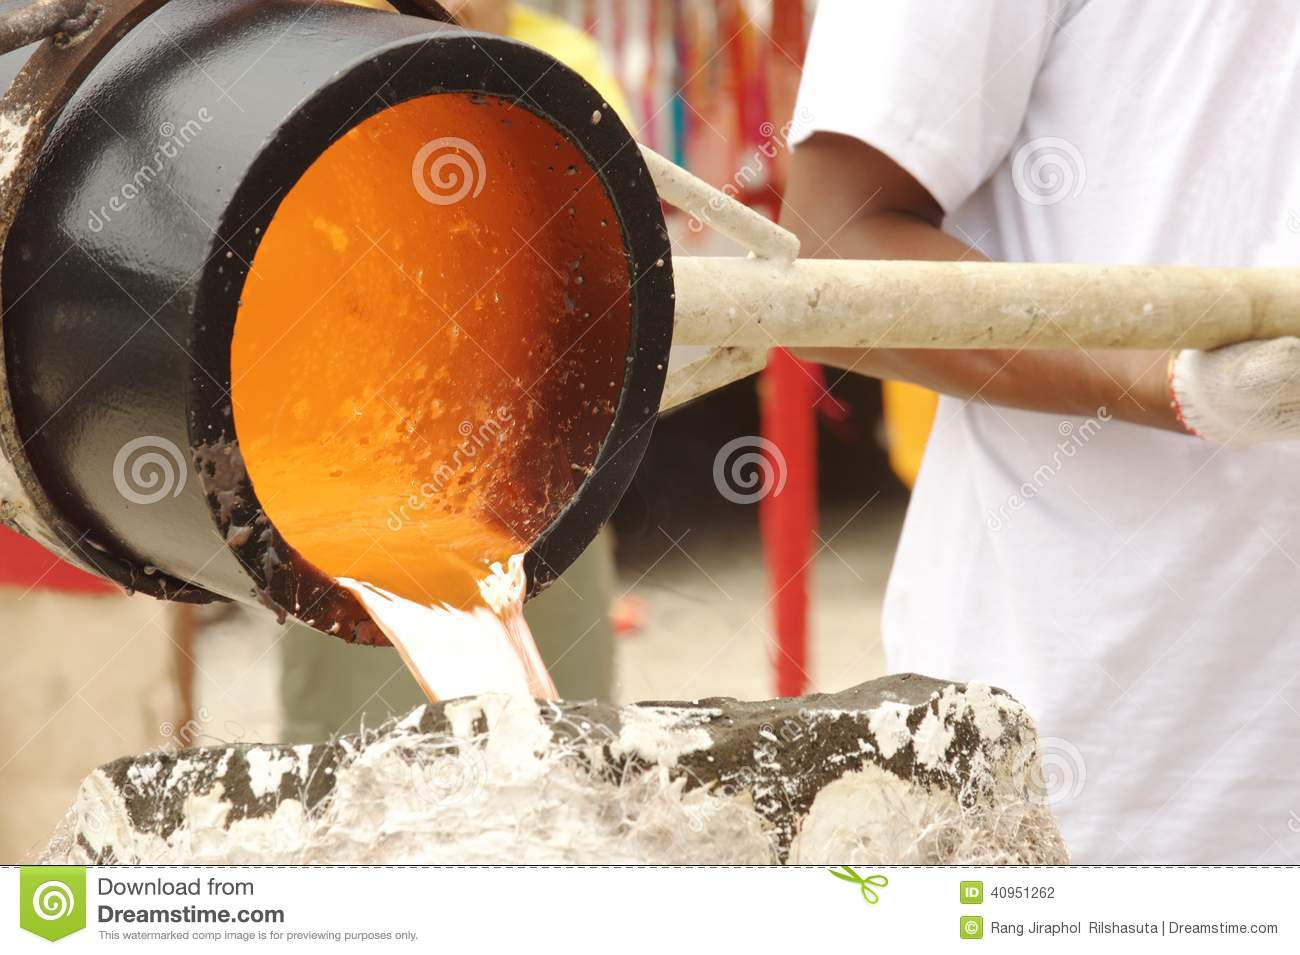 Illustration of molten metal being poured from a foundry crucible statue